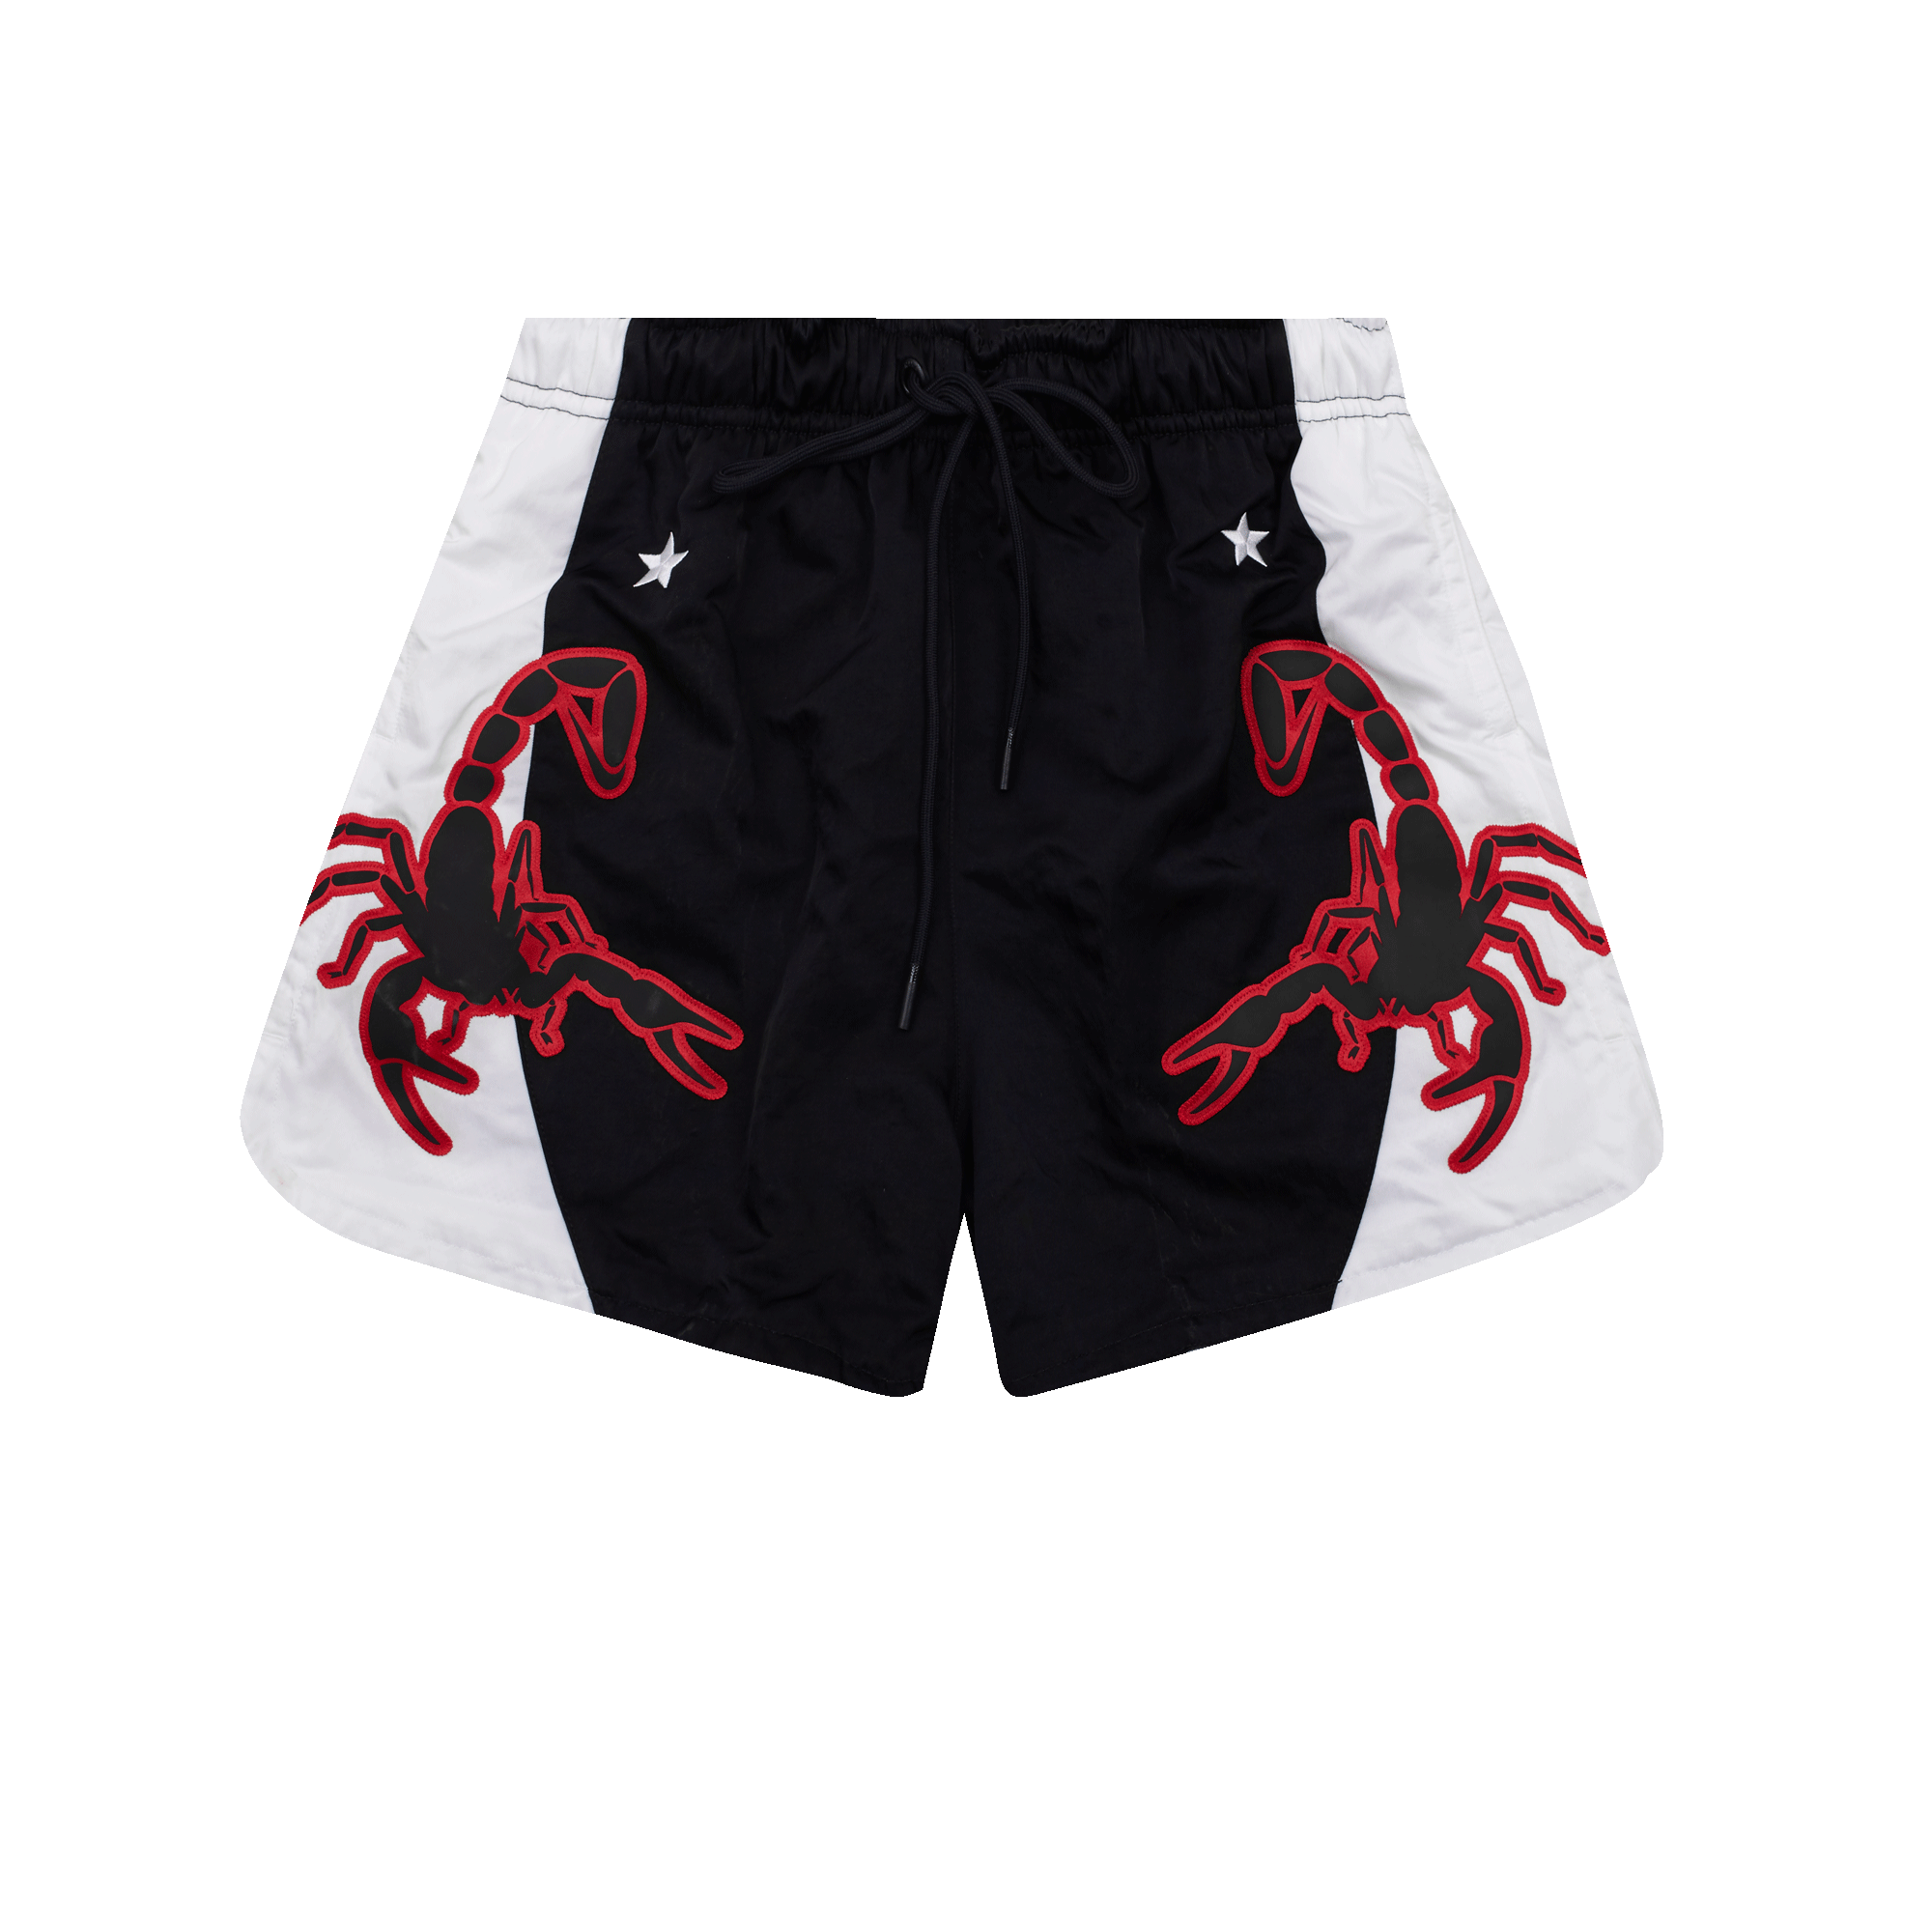 Nike NSW NSP Short Woven Scorpio black white white Shorts |